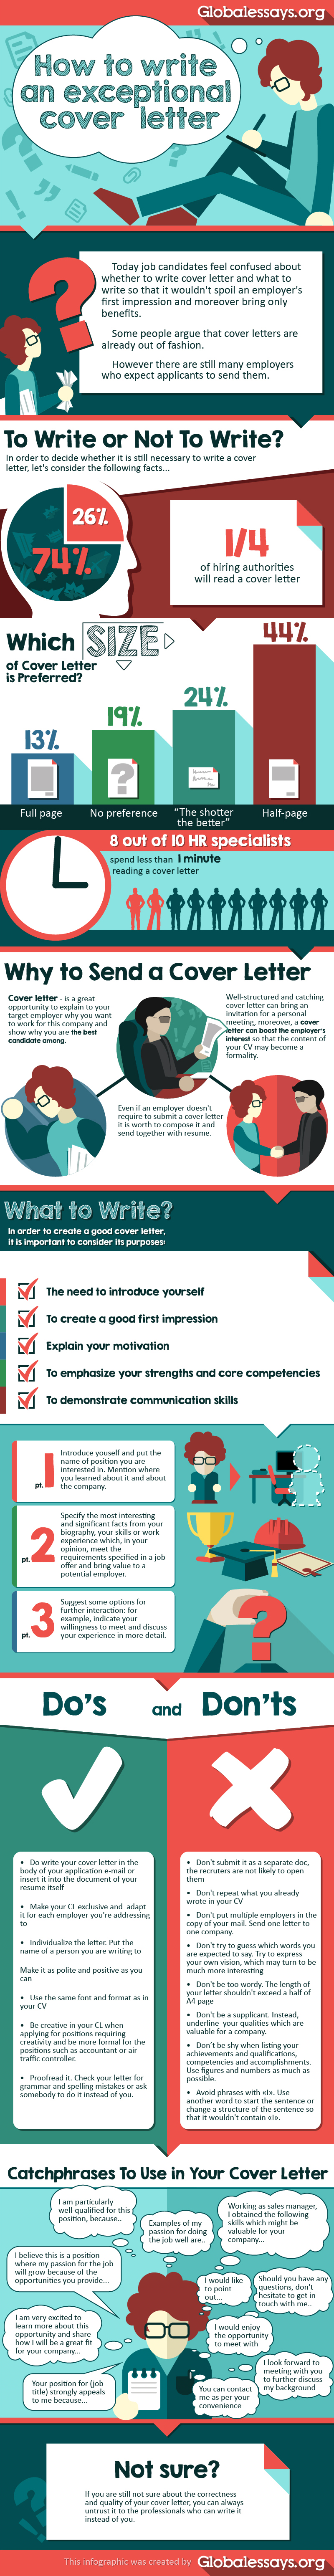 How to Write an Exceptional Cover Letter | Visual.ly